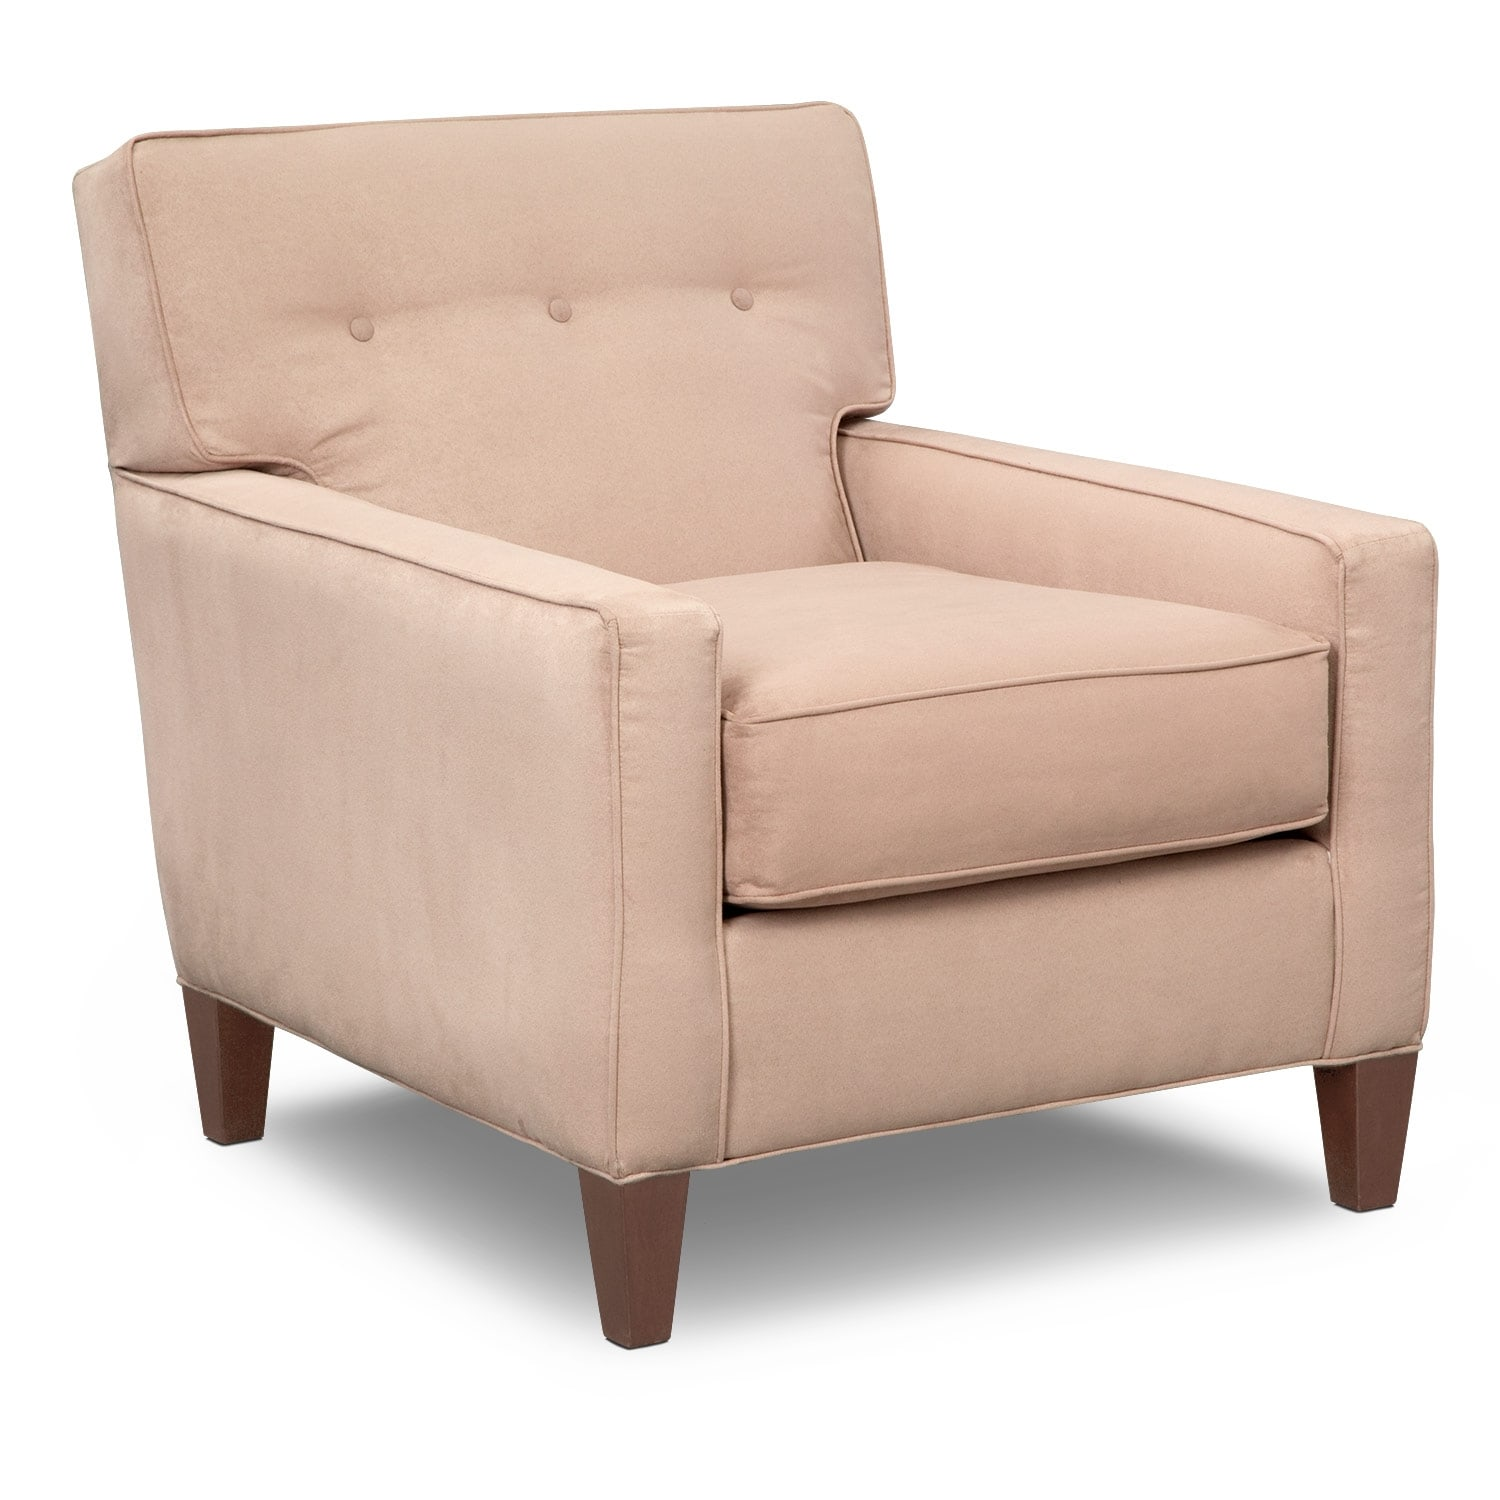 Living Room Furniture - Soho II Accent Chair